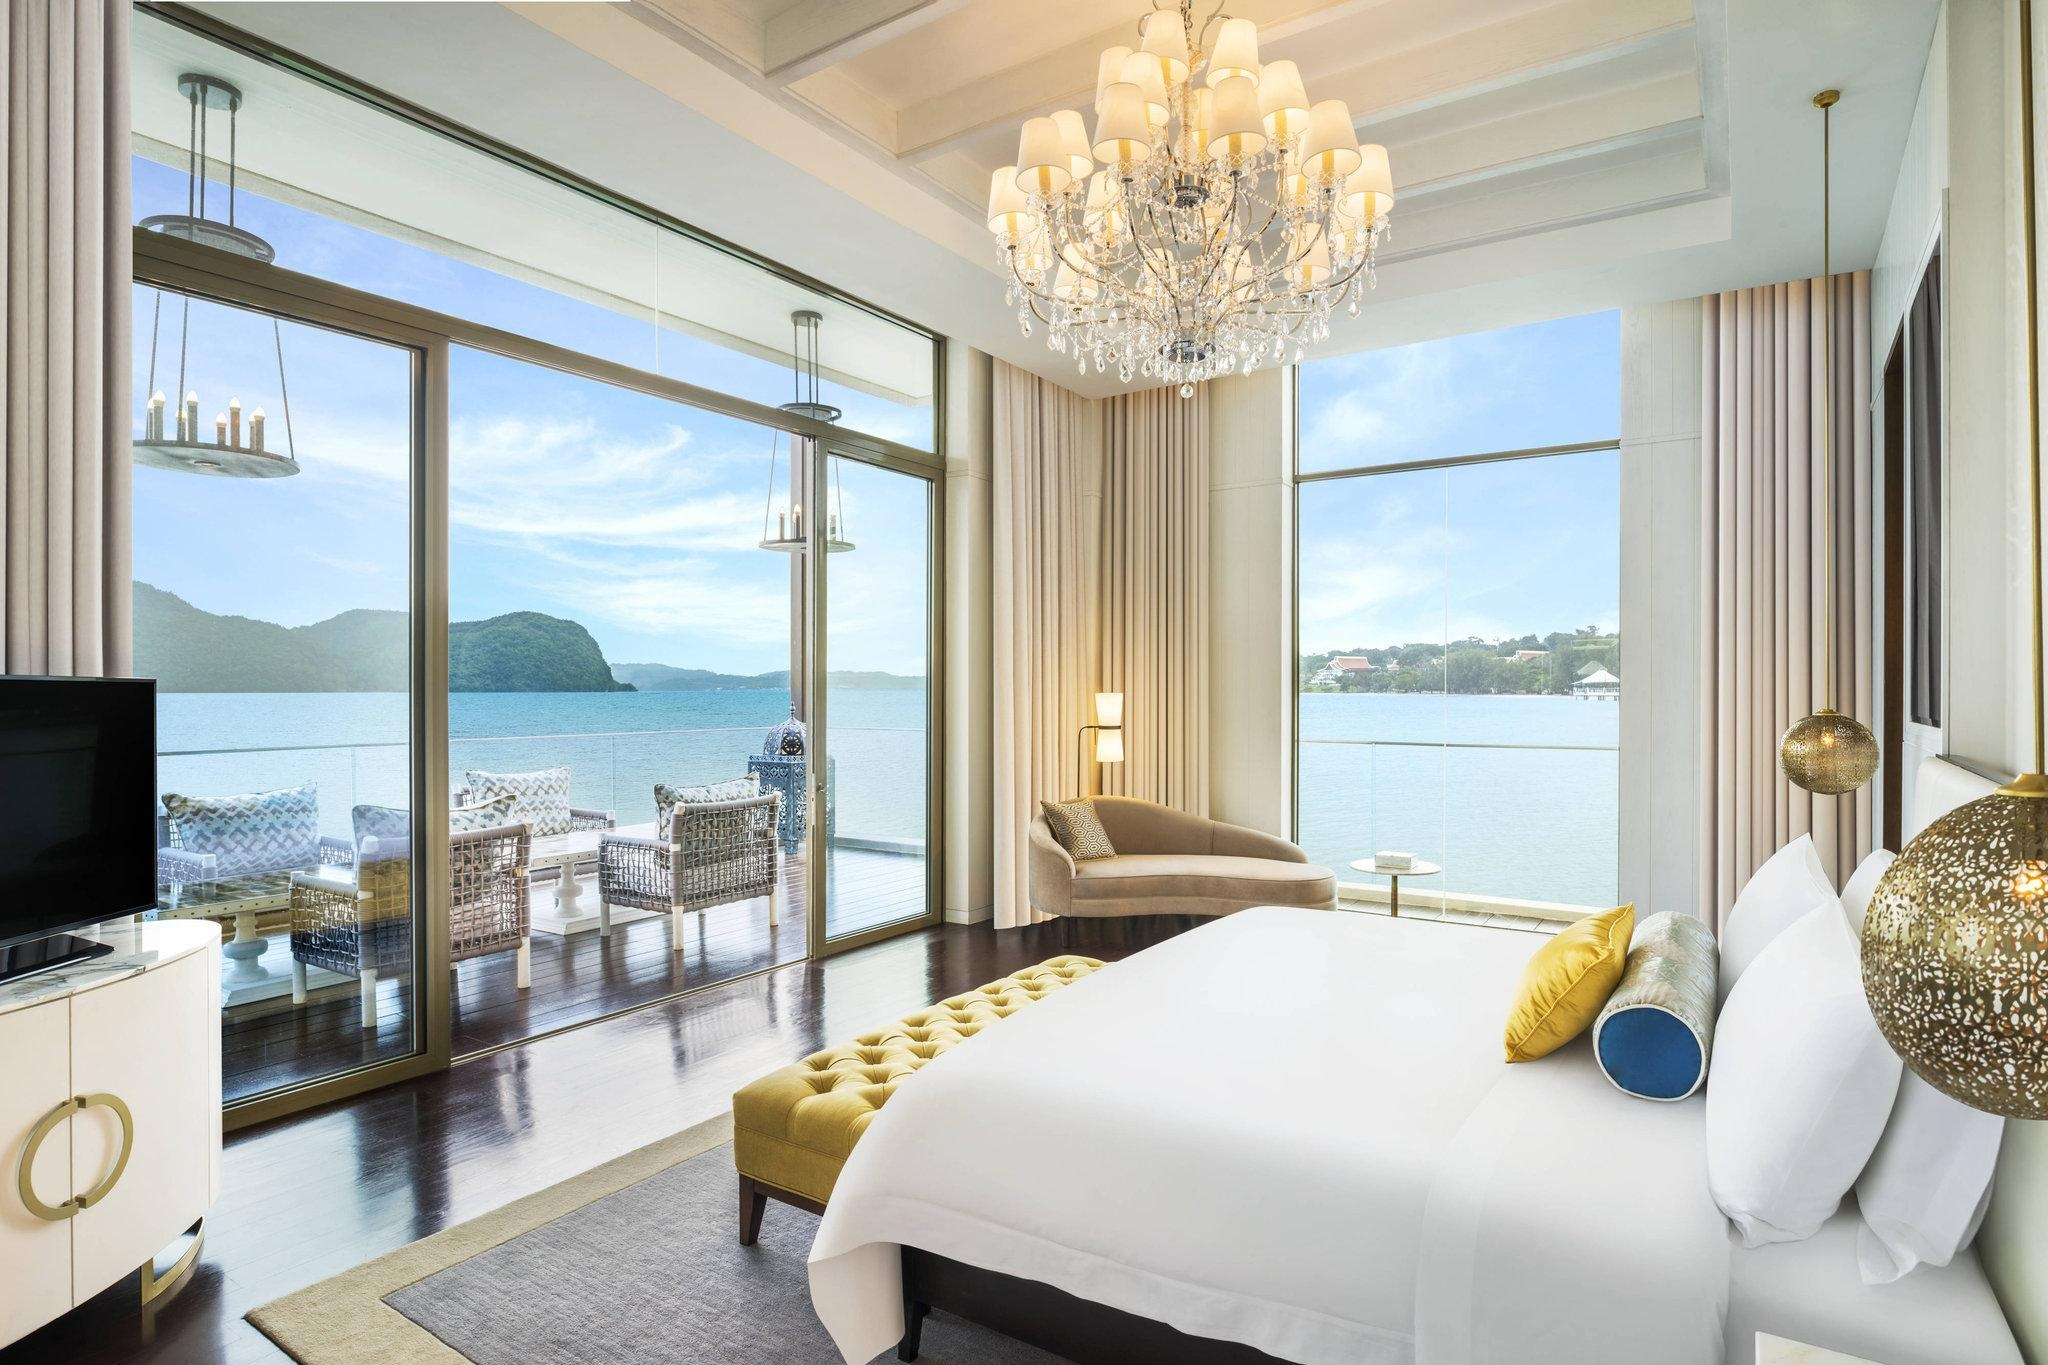 Lock in a free night at the St. Regis Langkawi for 50,000 Bonvoy points